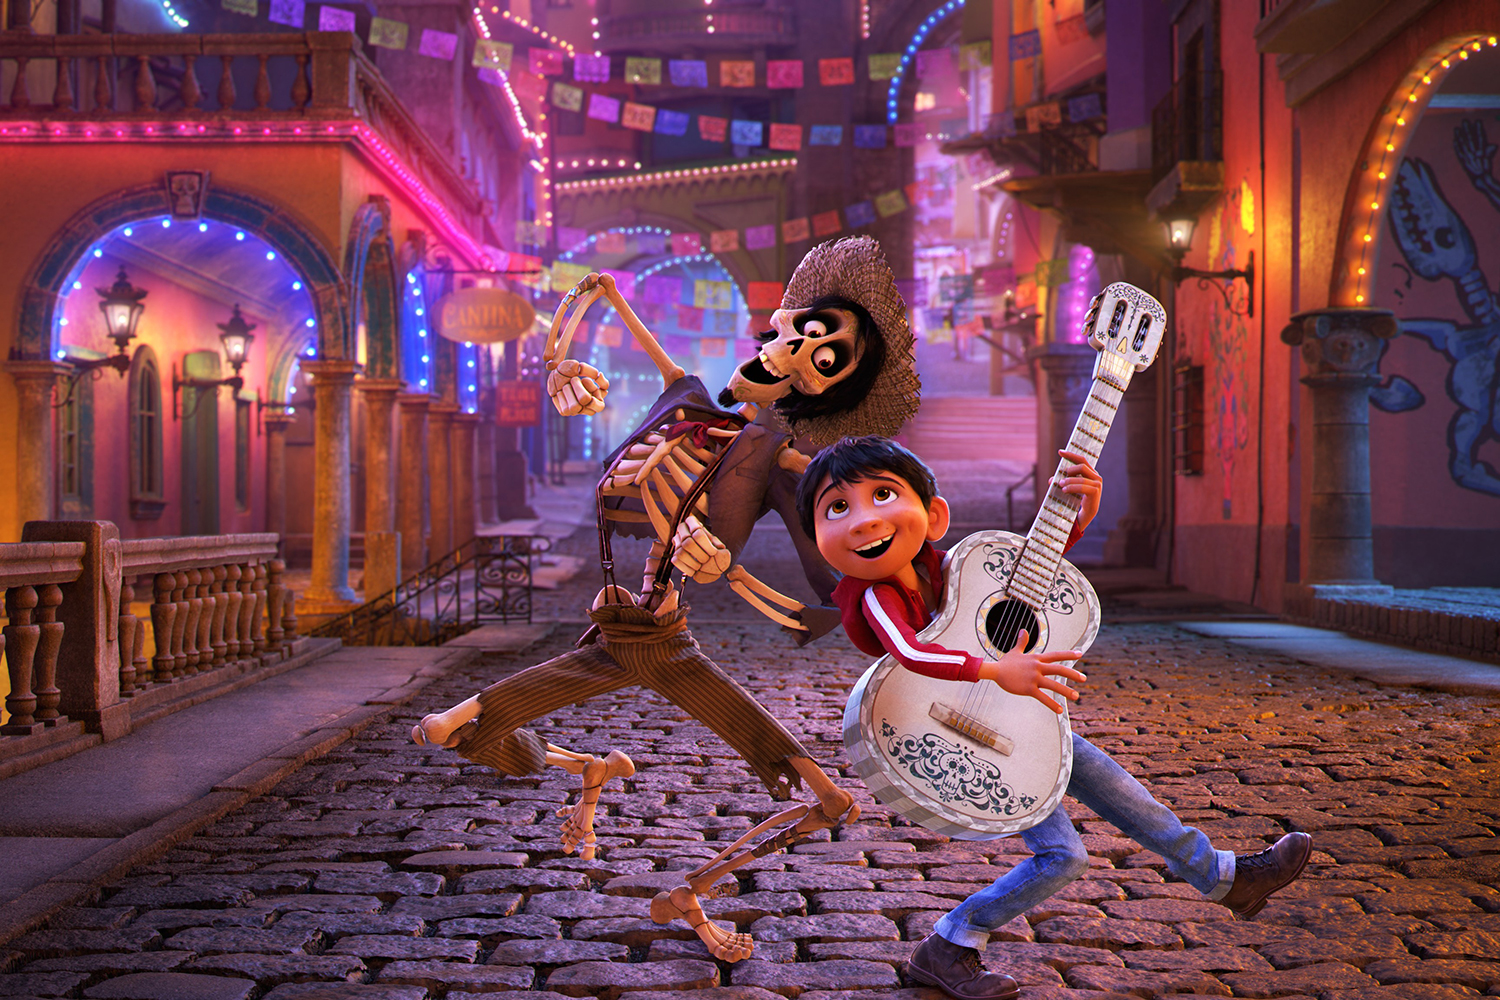 Pixar's Coco hits the right notes to honor Mexican culture and traditions